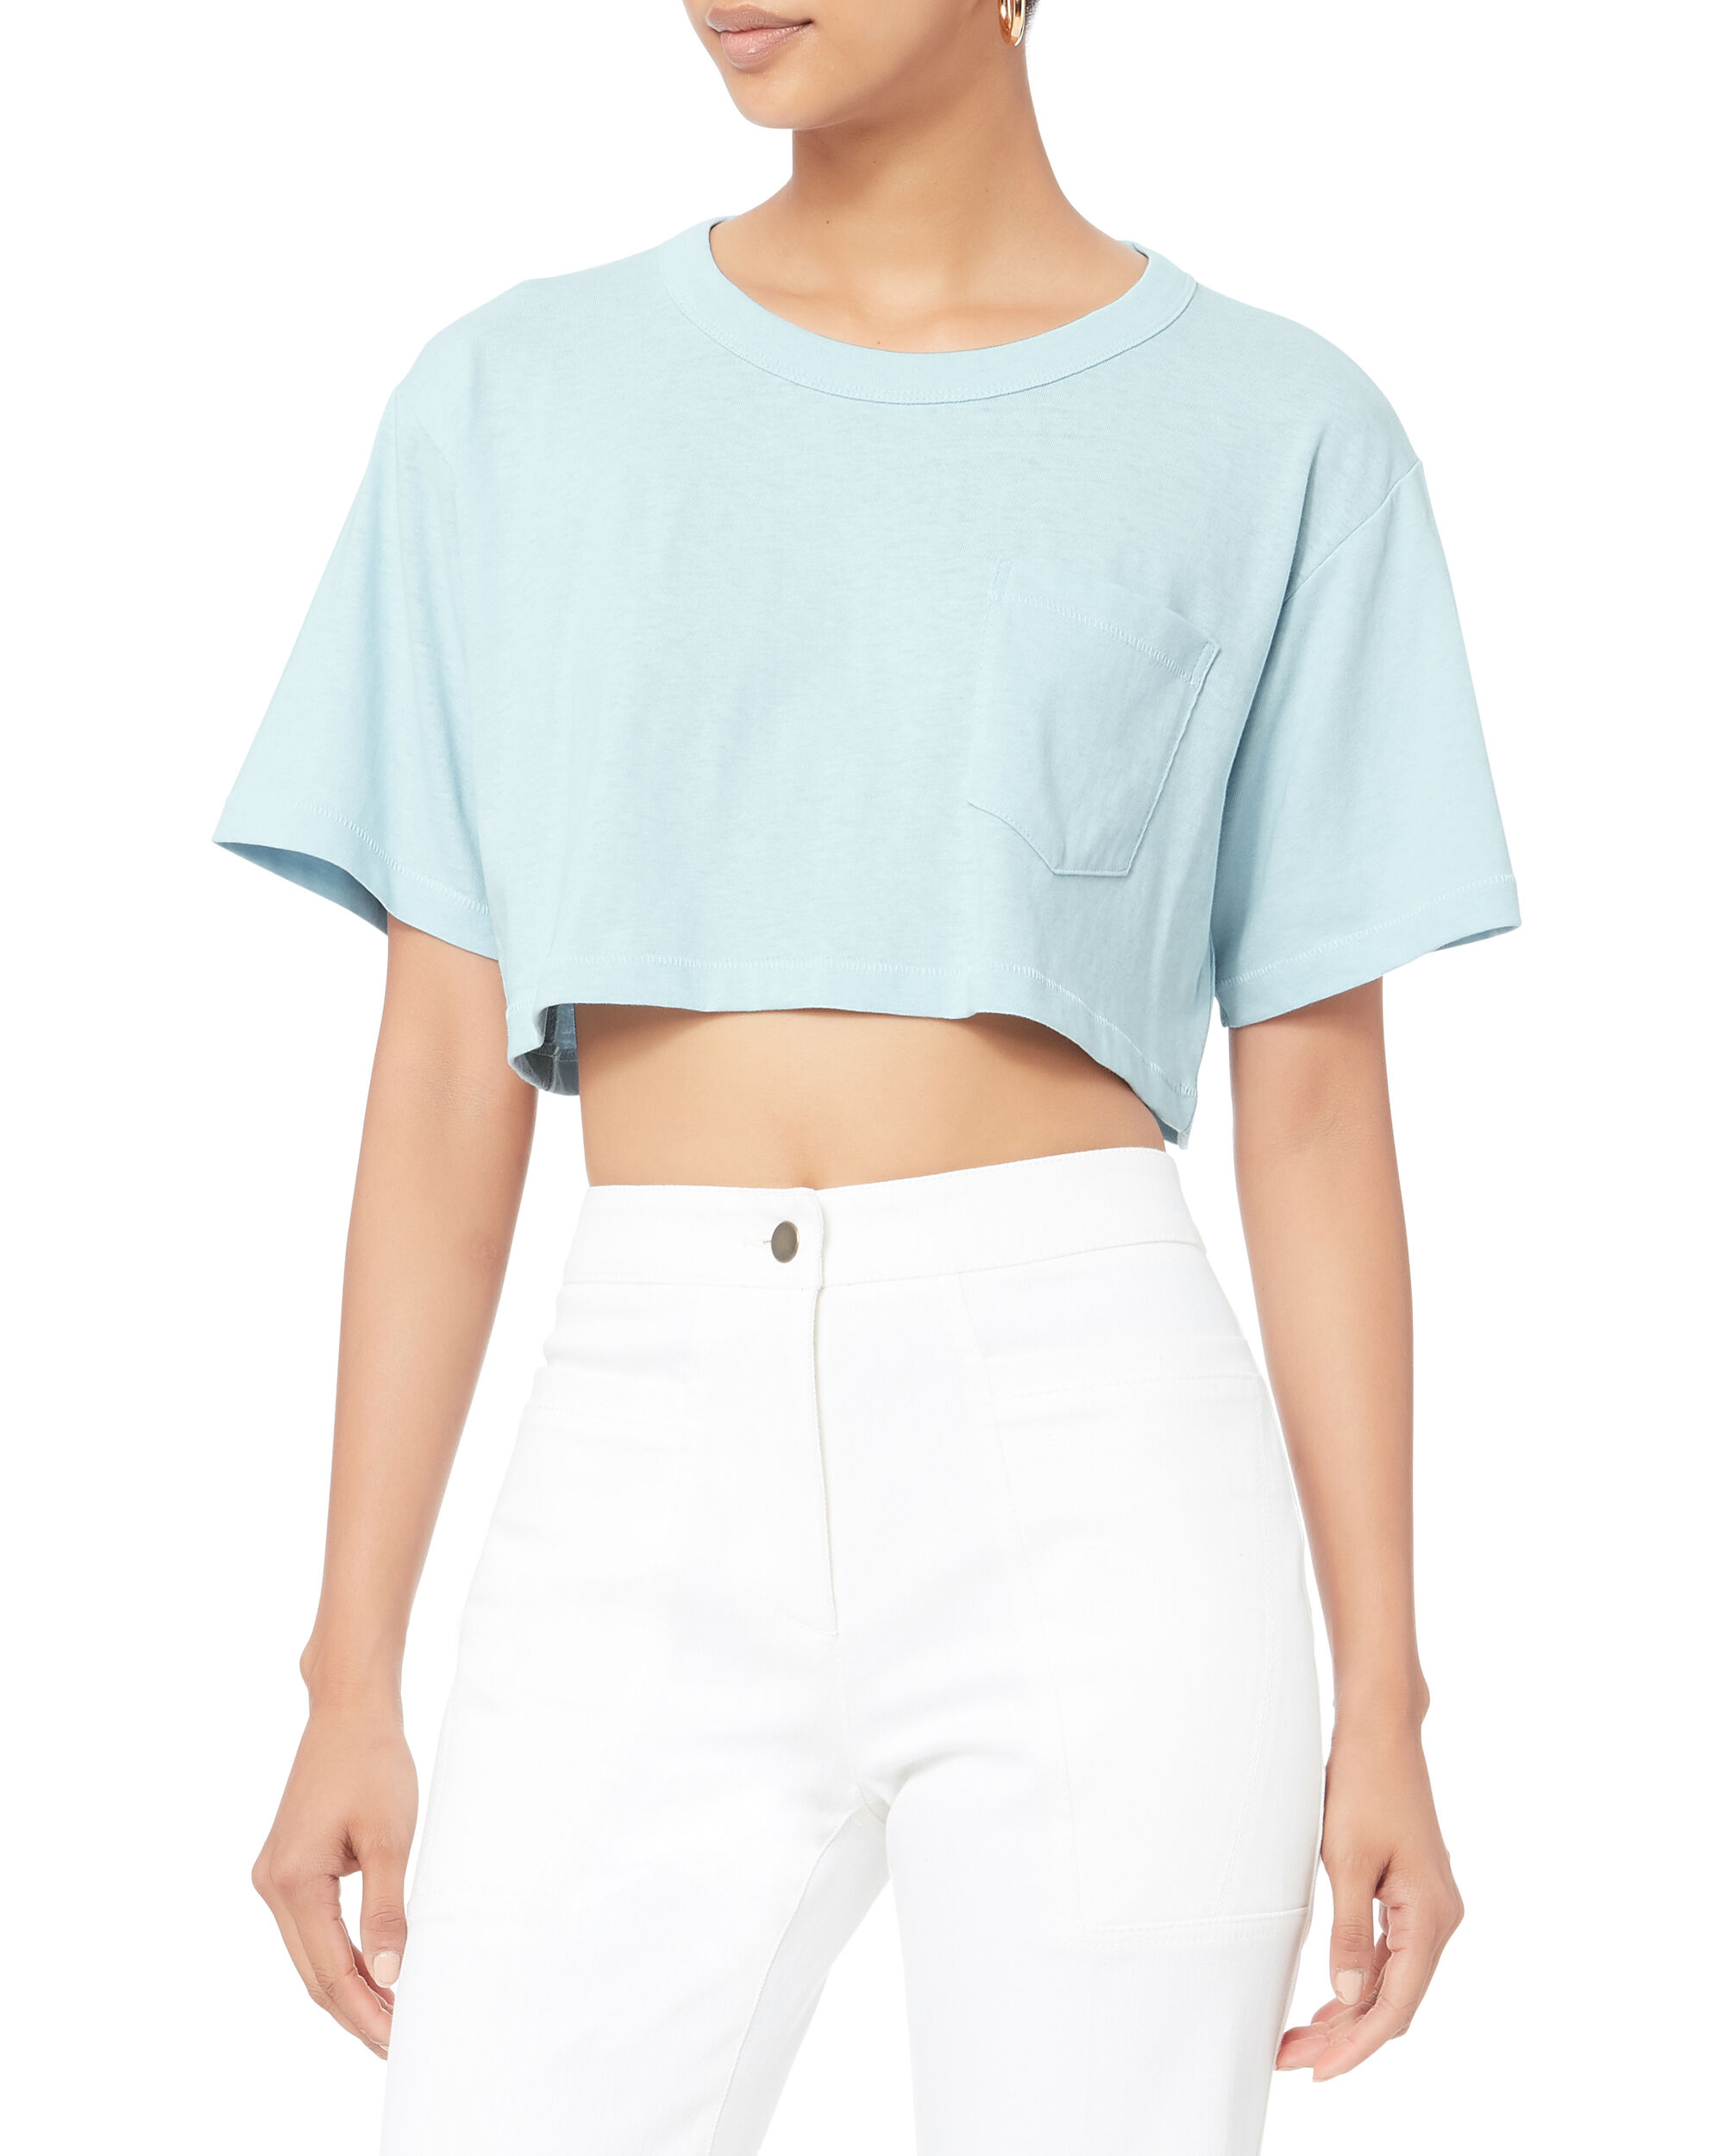 Crop Tee, BLUE-LT, hi-res